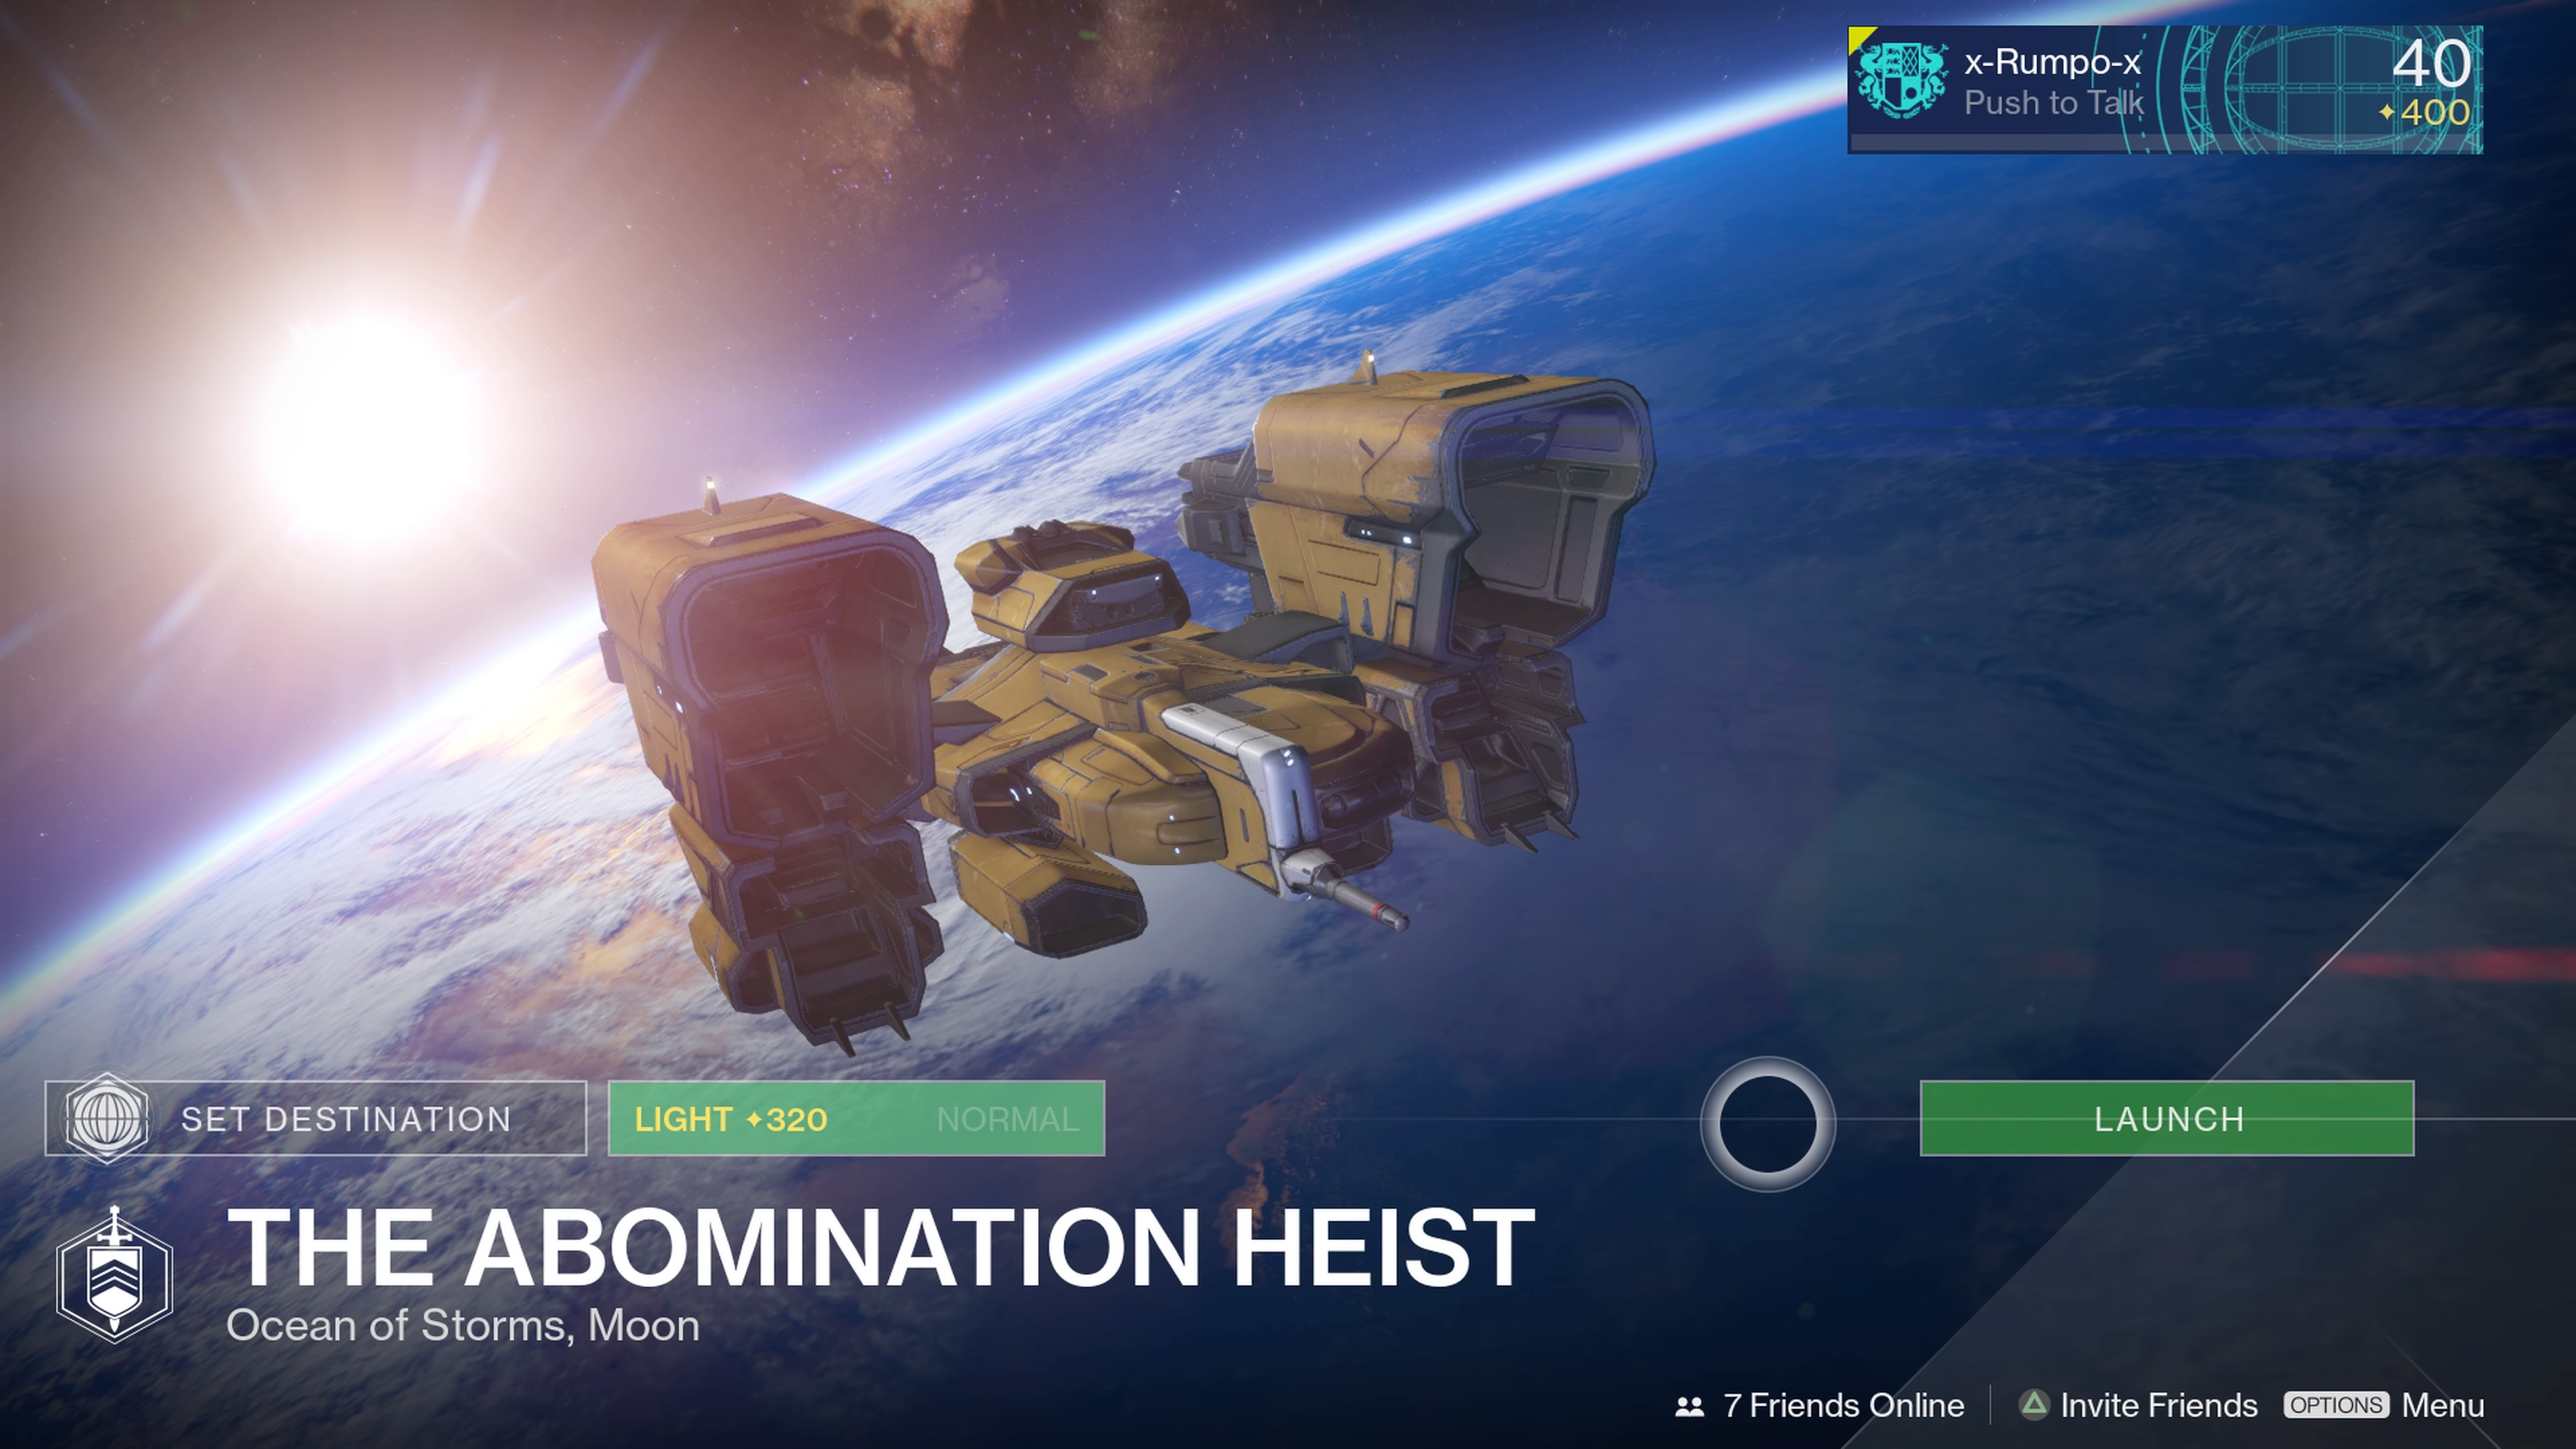 Complete the Abomination Heist Strike to unlock the Nova Mortis